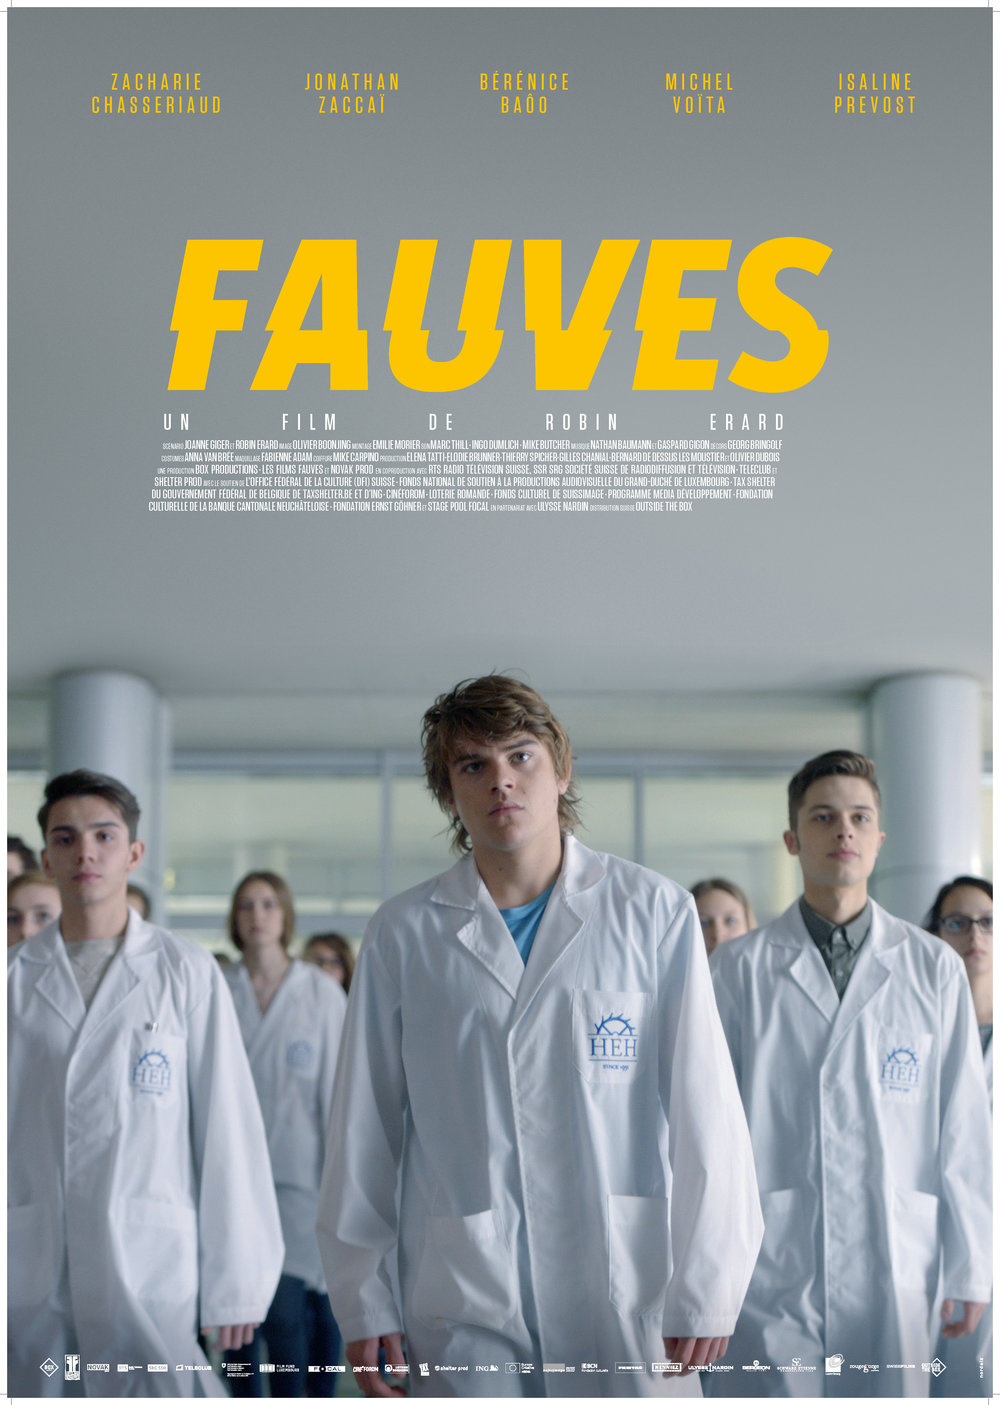 FAUVES- WILD CATS  - Directed by Robin ERARDScript by Robin ERARD & Joanne GIGERWith Zacharie CHASSERIAUD, Jonathan ZACCAÏ, Bérénice BAÔO, Michel VOÏTA & Isaline PREVOSTYear: 2017Original Version: FrenchGenre: Drama, ComedyRunning Time: 100minProduction companies: LES FILMS FAUVES (LU), NOVAK PROD (BE) & BOX PRODUCTIONS (CH)